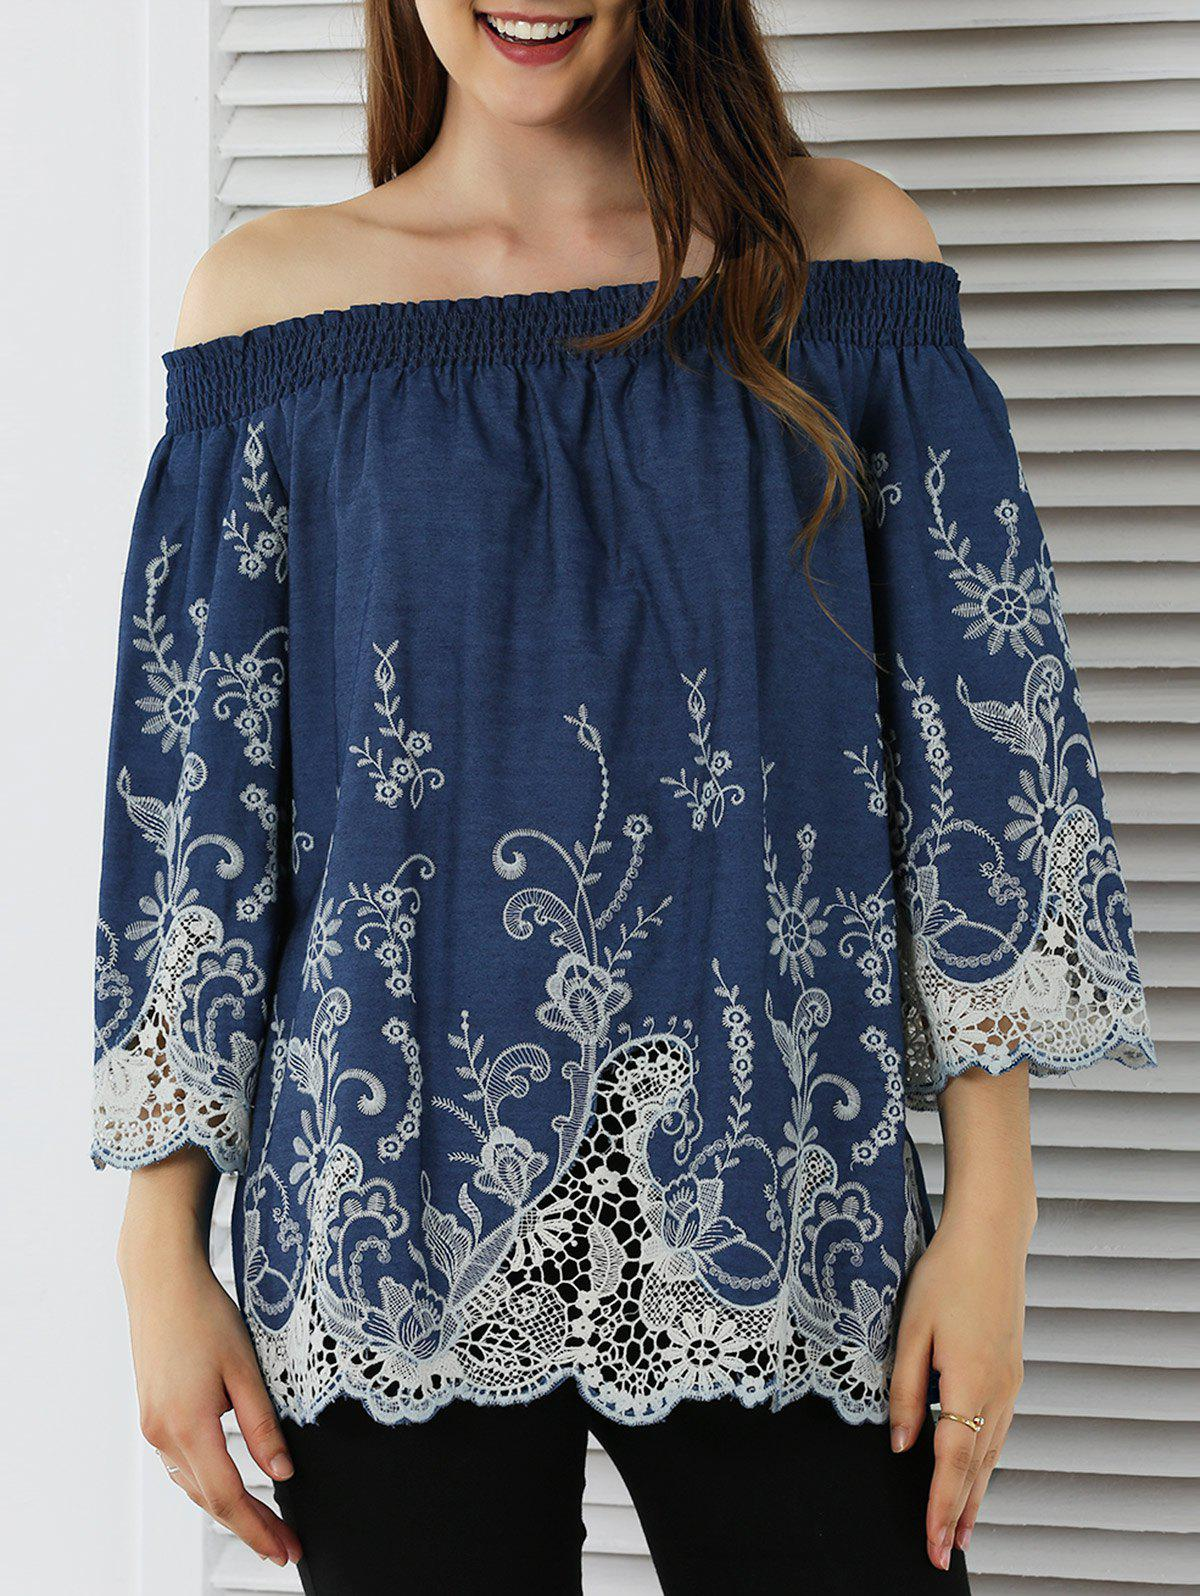 Sweet Off-The-Shoulder Lace Splicing Blouse - DENIM BLUE M